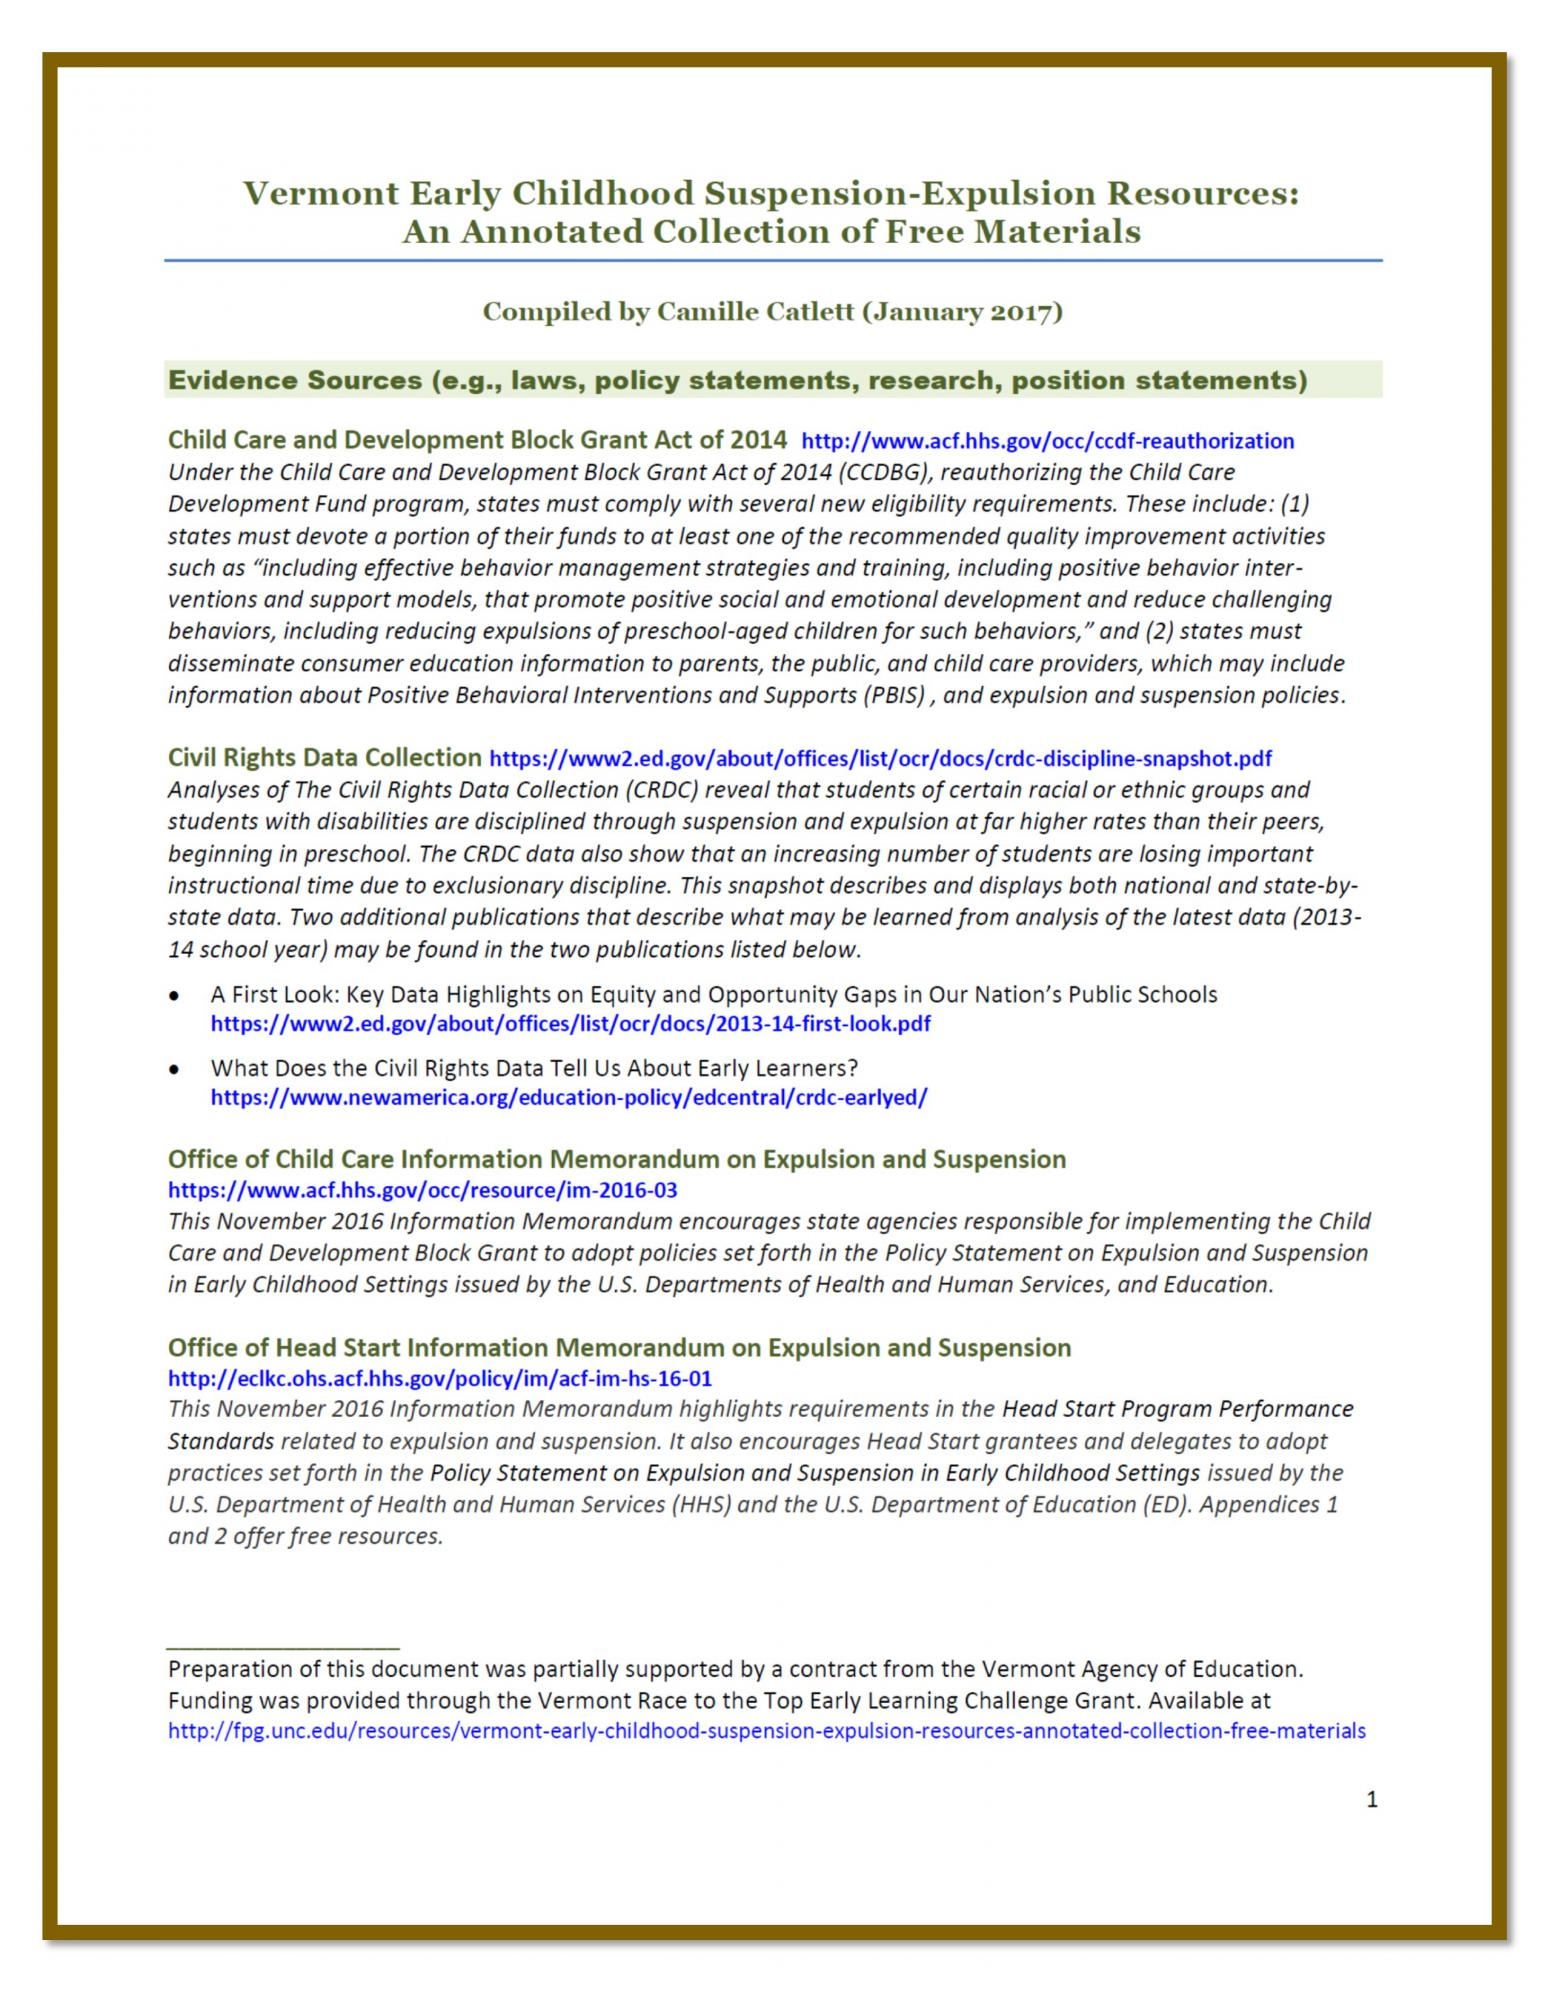 Vermont Early Childhood Suspension Expulsion Resources An Annotated Collection Of Free